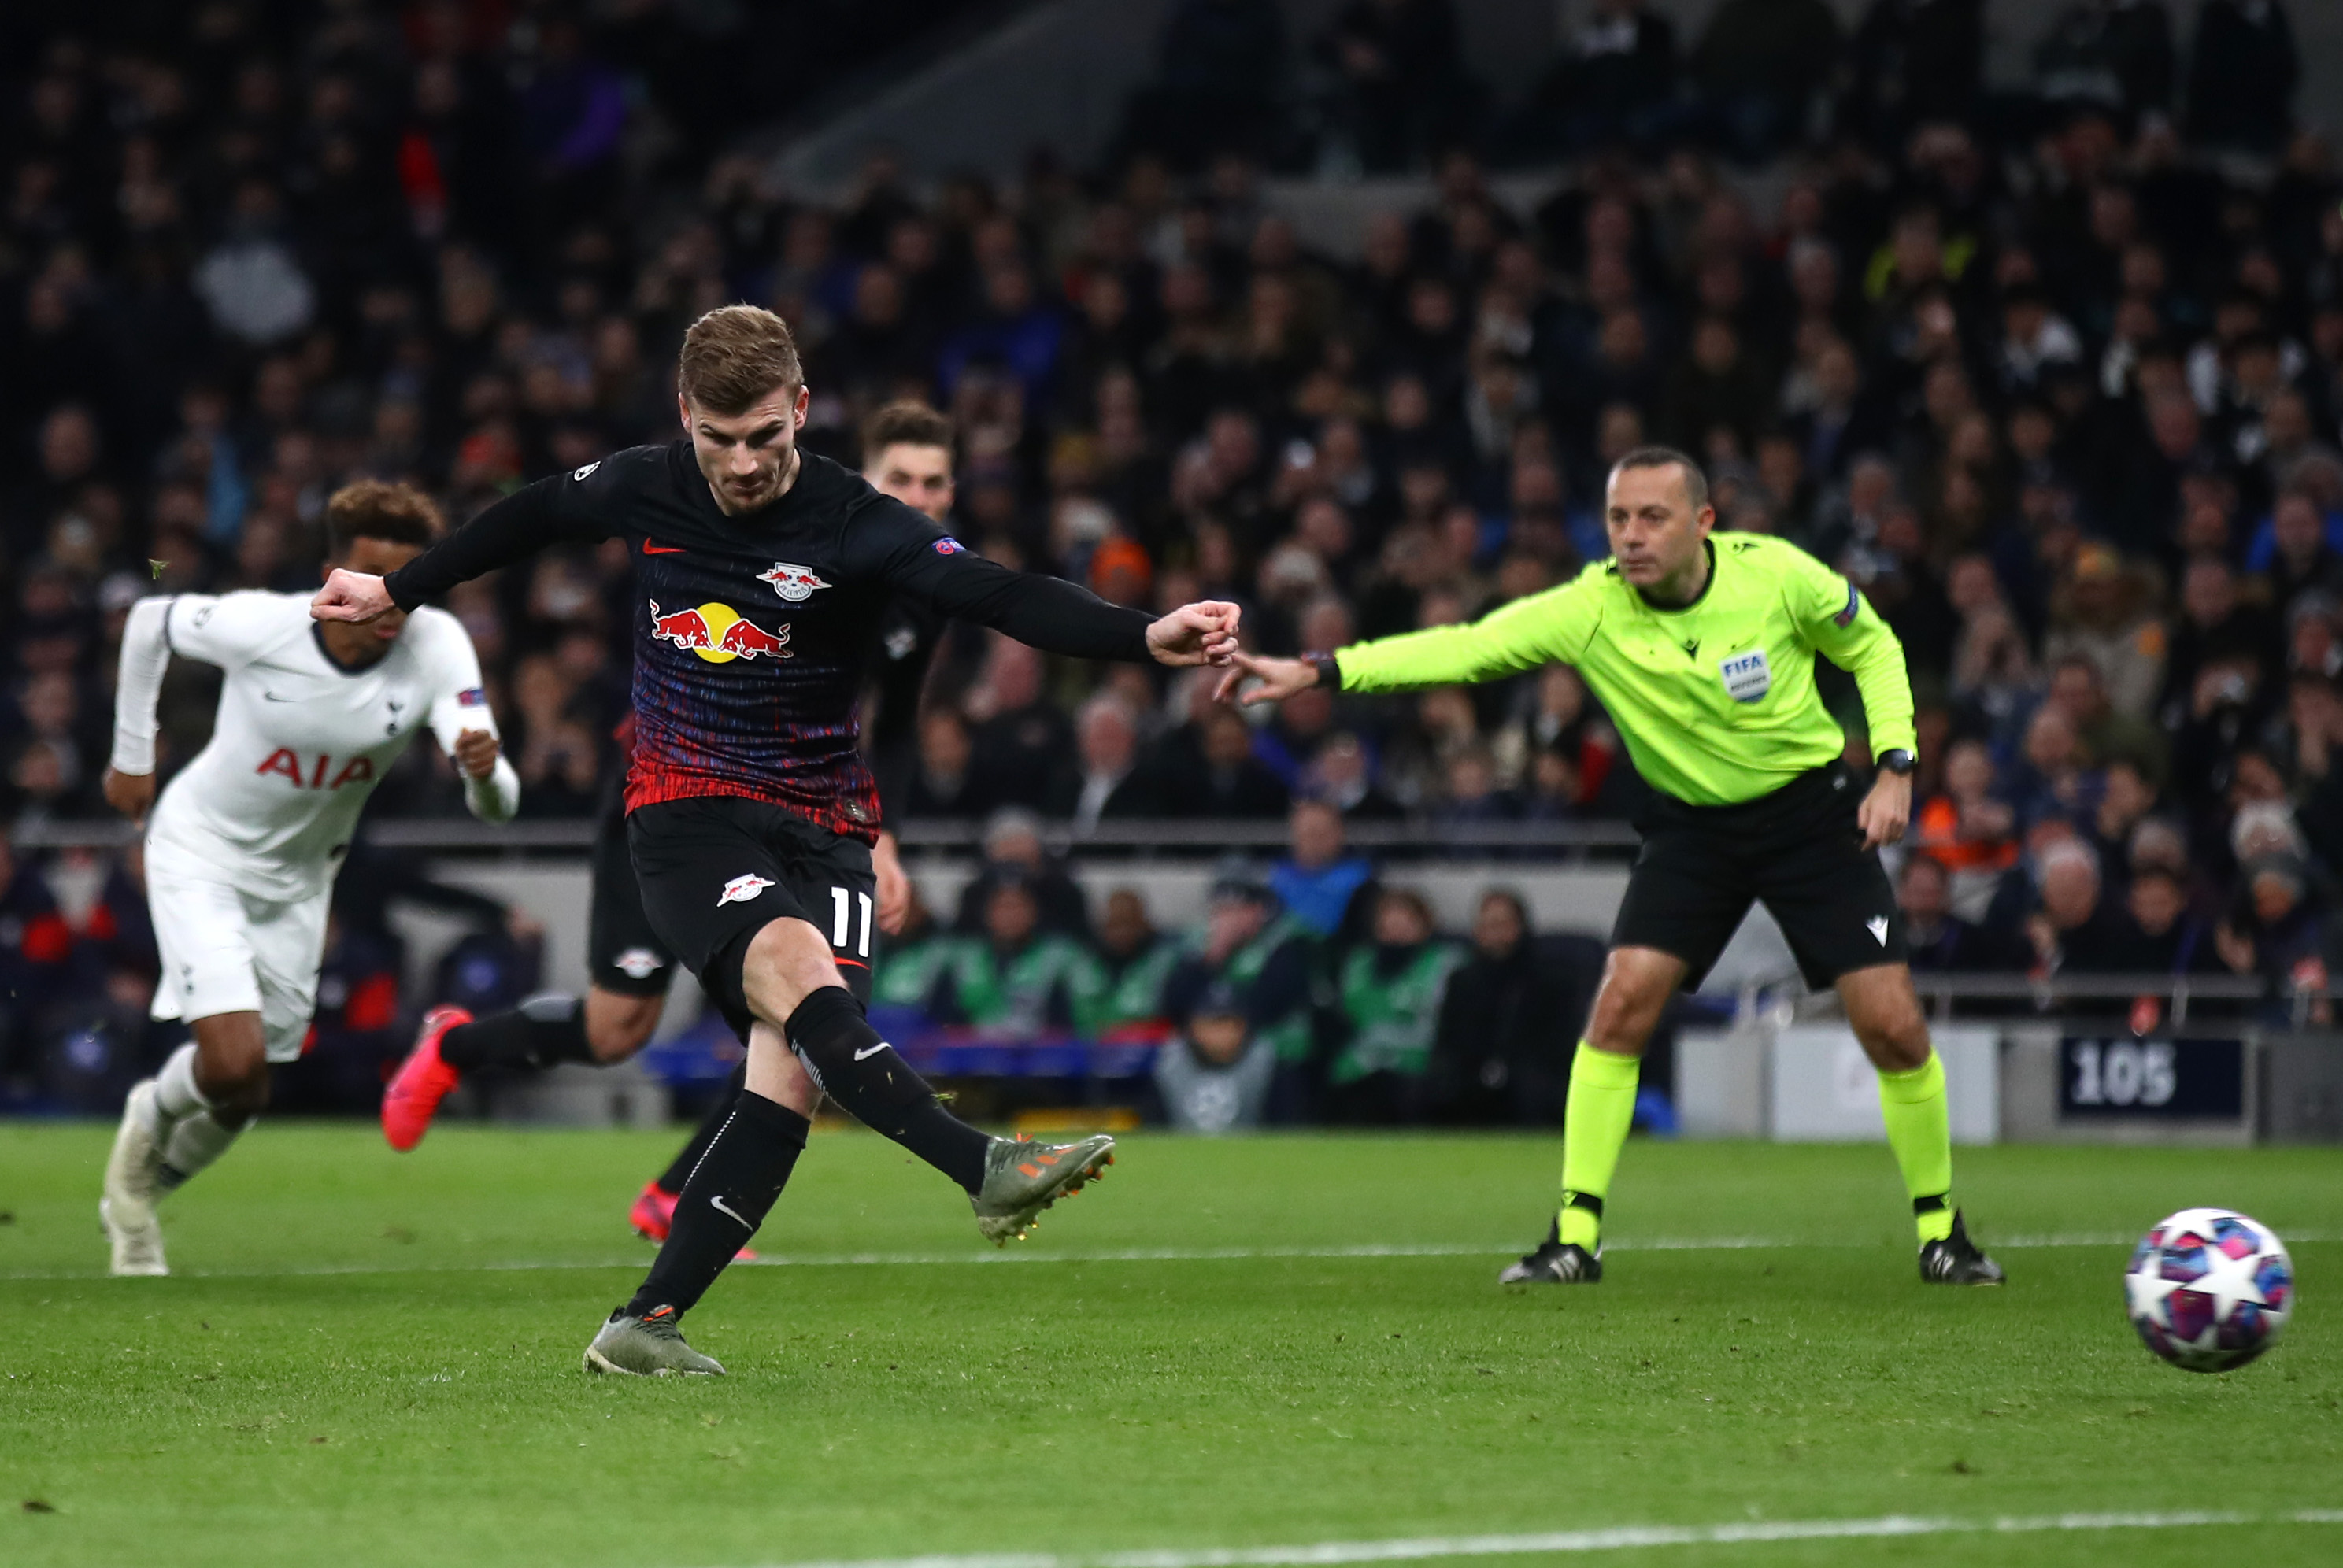 RB Leipzig overpowers Tottenham Hotspur in Champions League